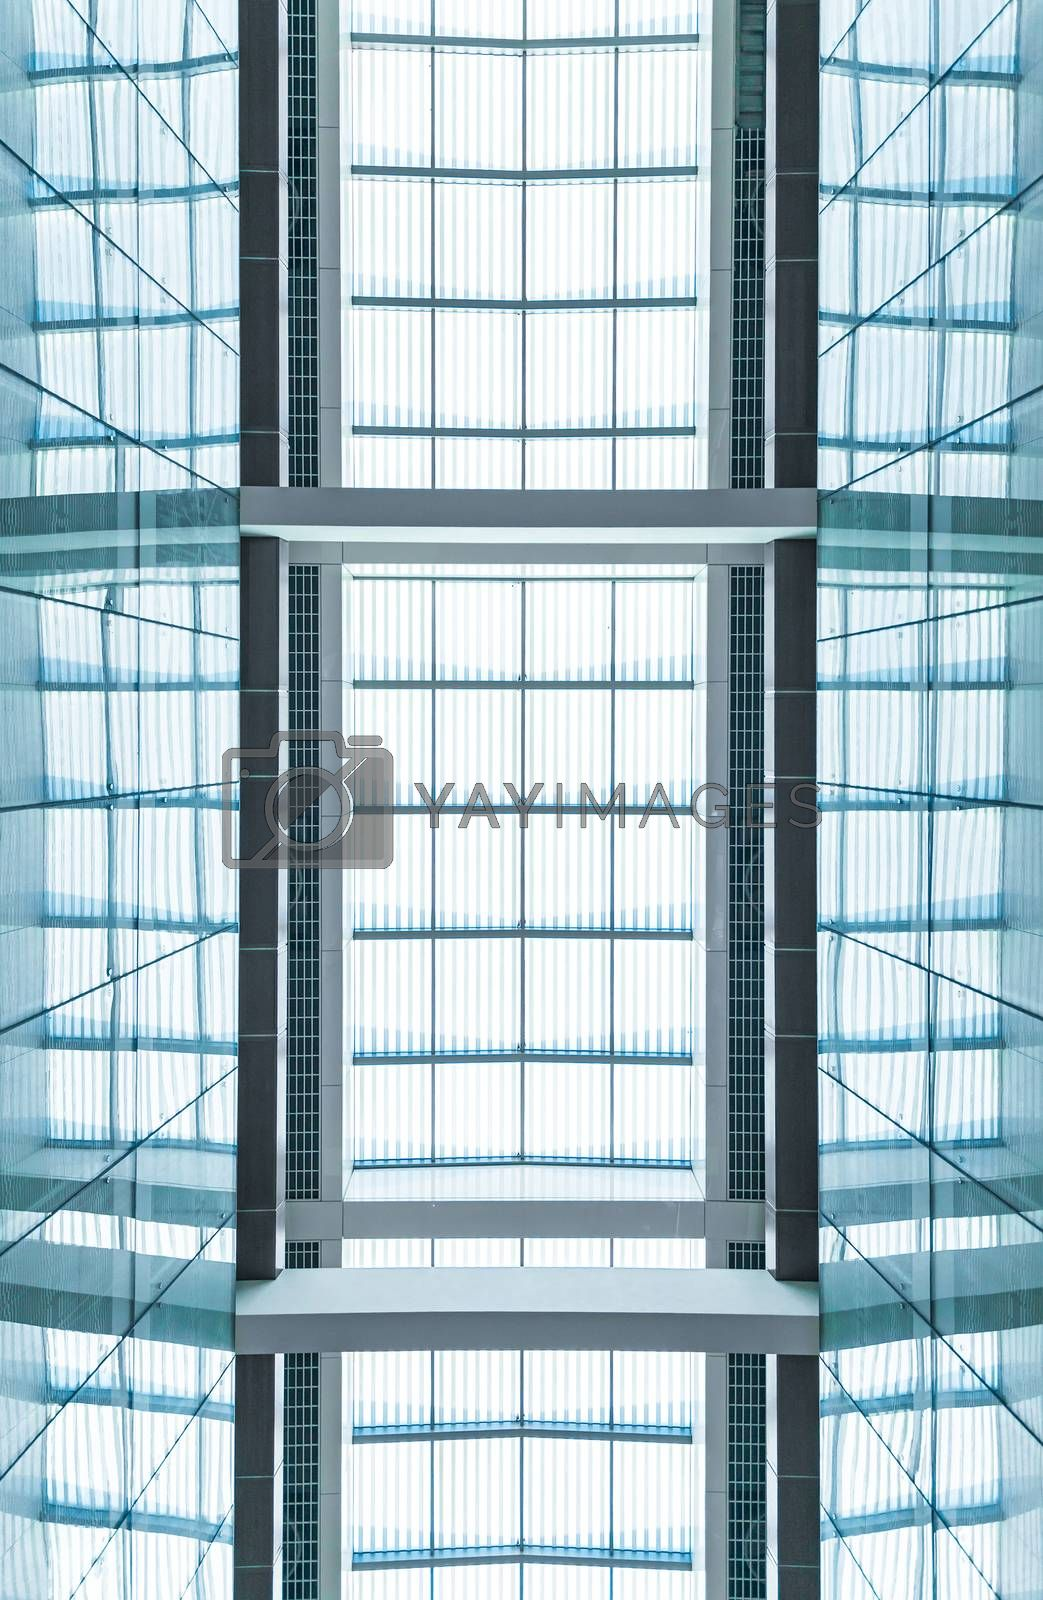 View through modern skylight of blue glass. Roof of building with square symmetric sections. Contemporary architectural style. Abstract backgrounds and backdrops.